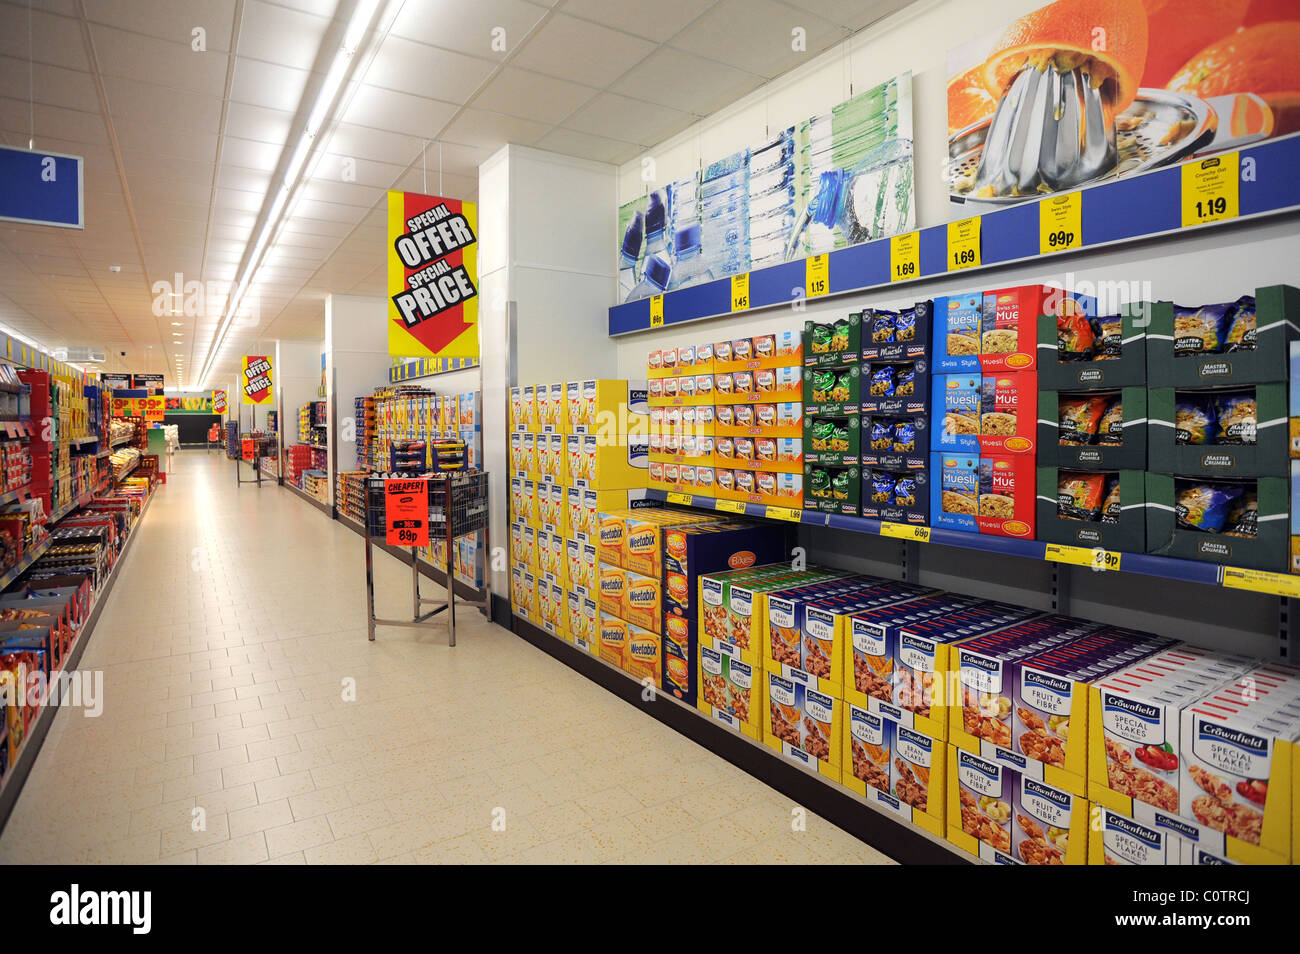 Lidl discount supermarket in newhaven empty aisle with goods filling stock photo royalty free - Mobel discount kassel ...